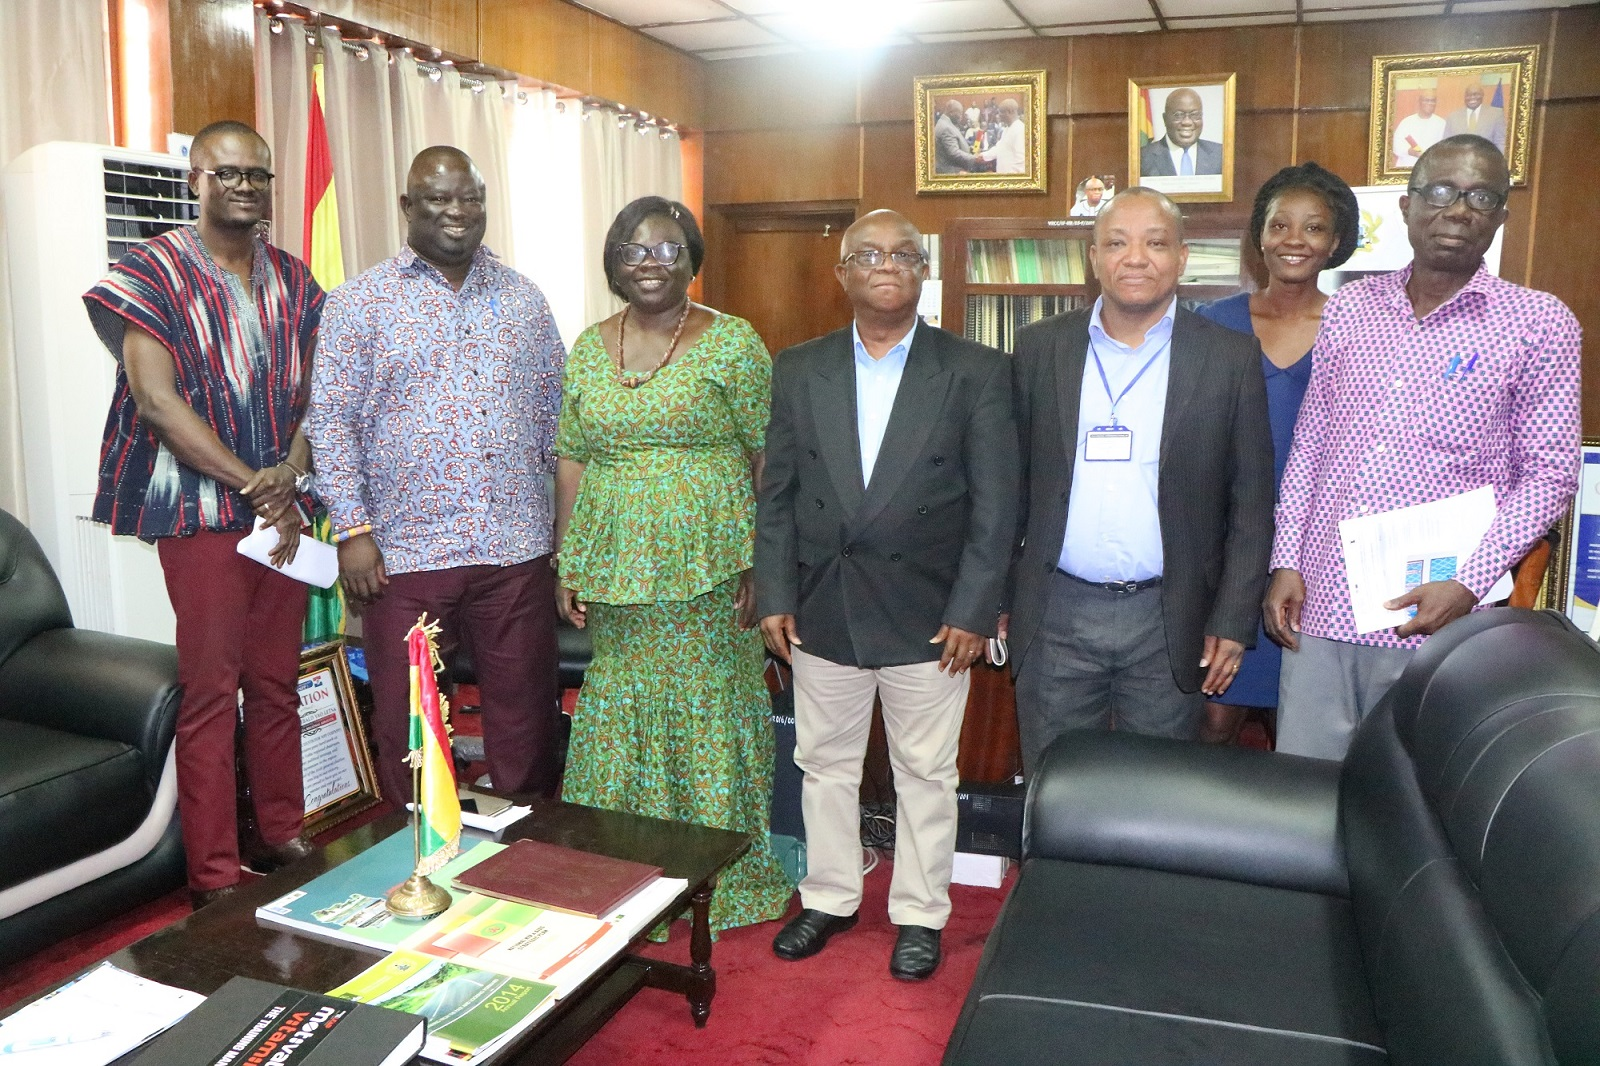 Nana Bakateyi, CEO of GLOWA and some staff of GLOWA pose with the Volta Regional Minister at his Office